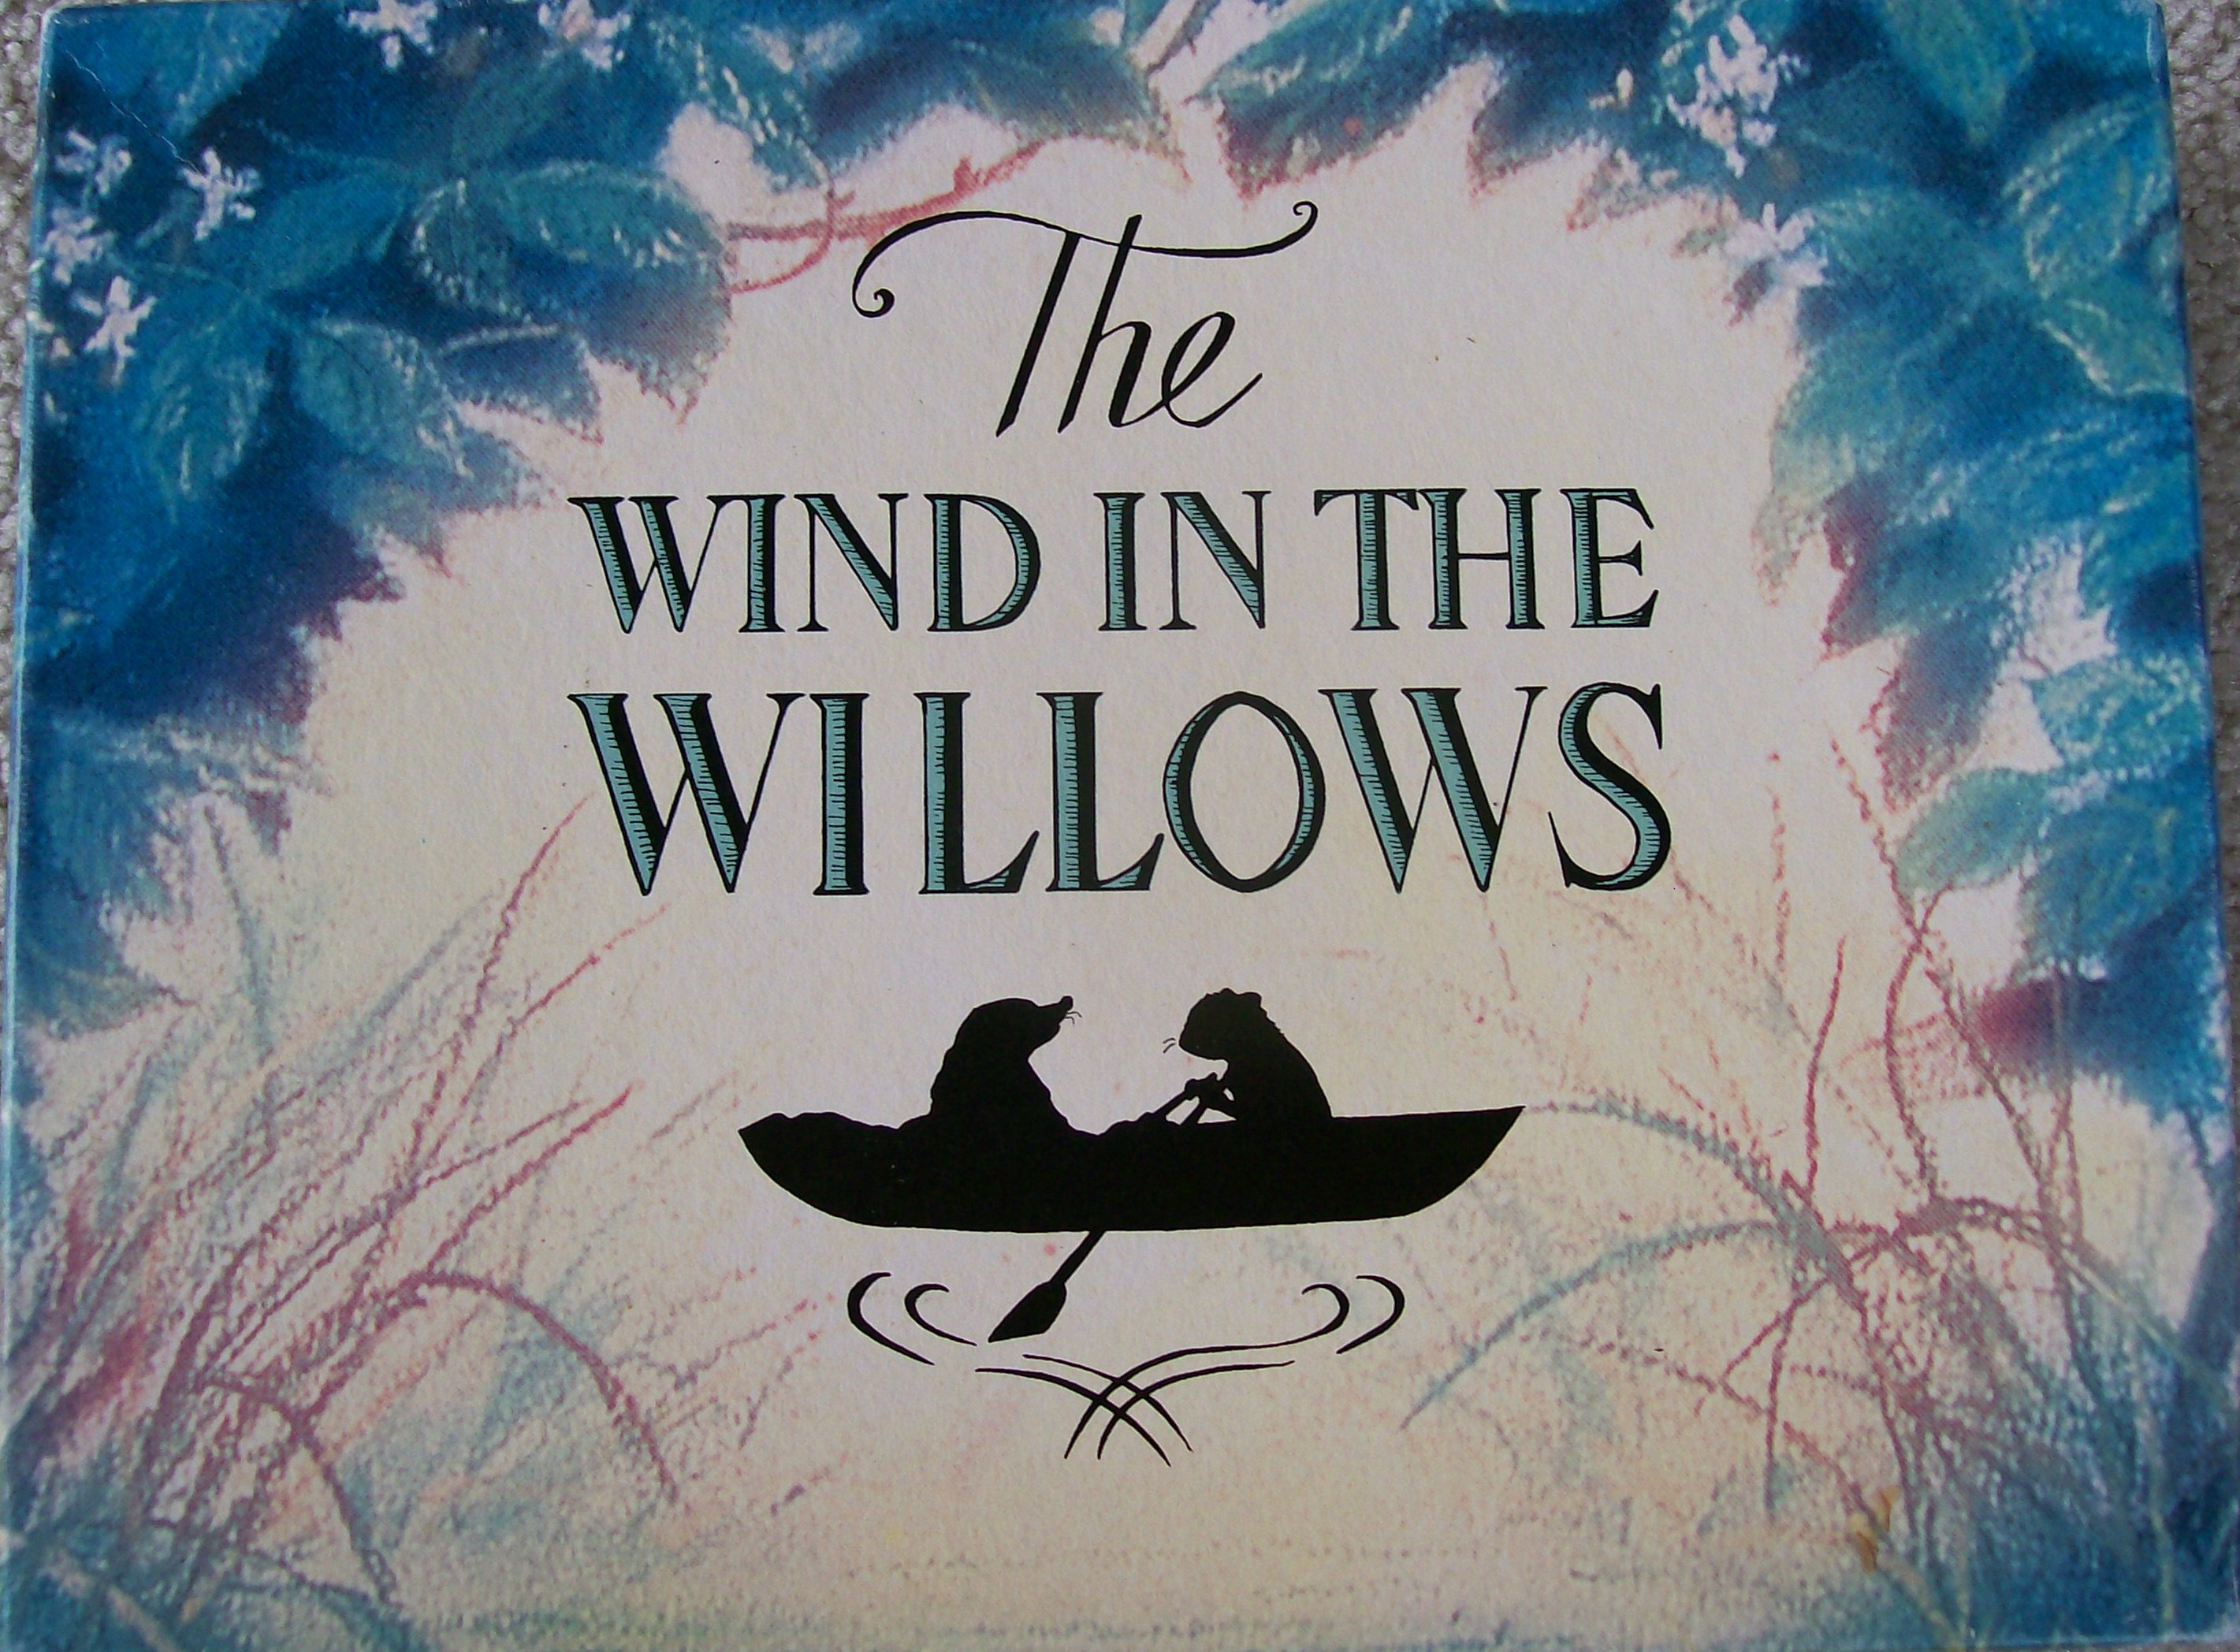 1997 readers digest the wind in the willows board game